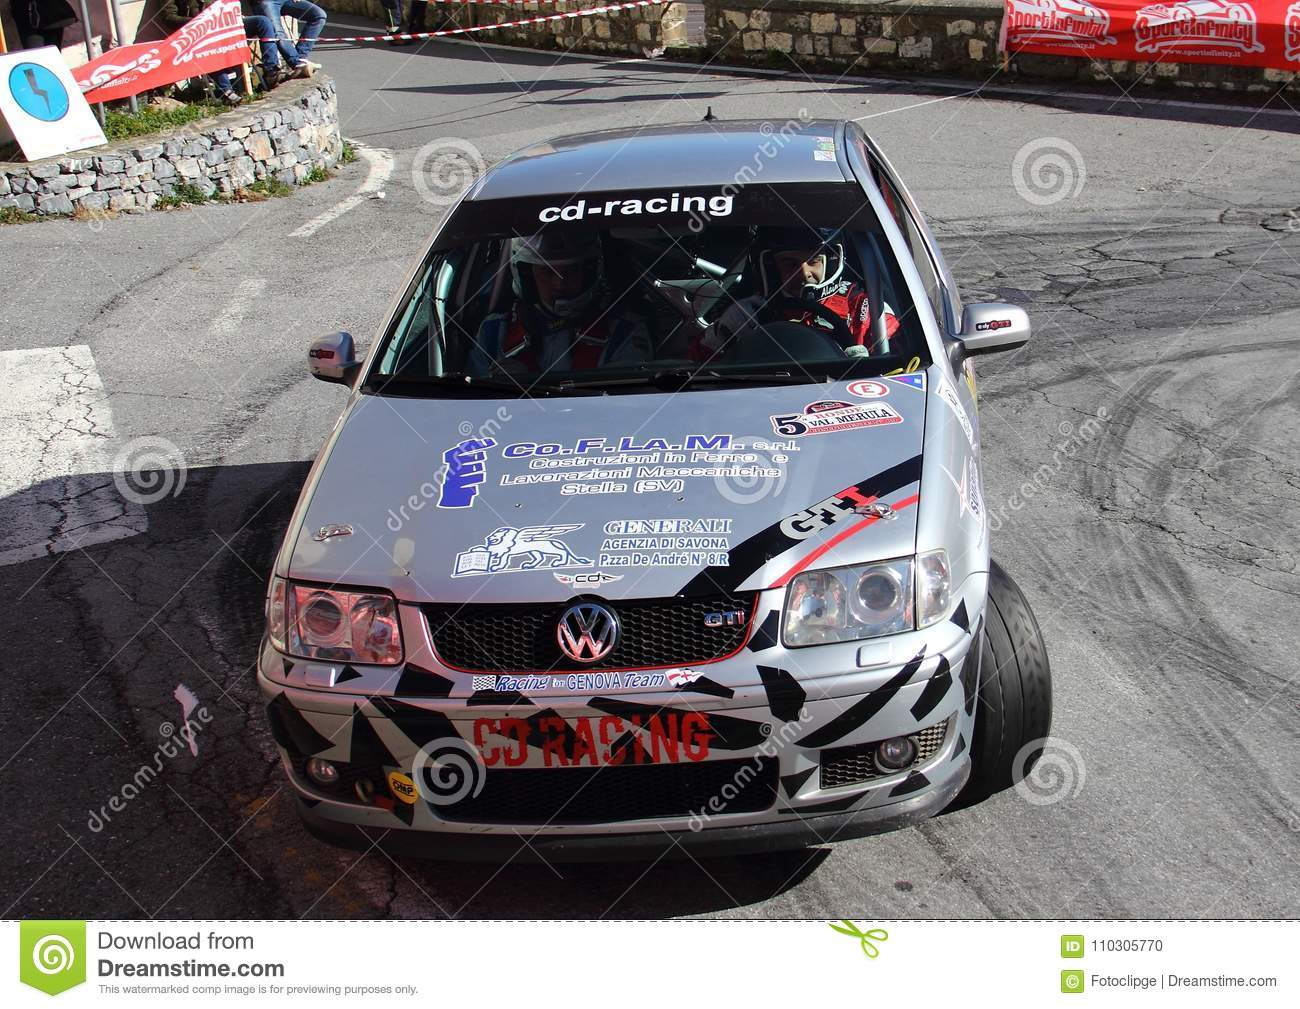 A Vw Polo Gti Race Car Involved In The Race Editorial Image Image